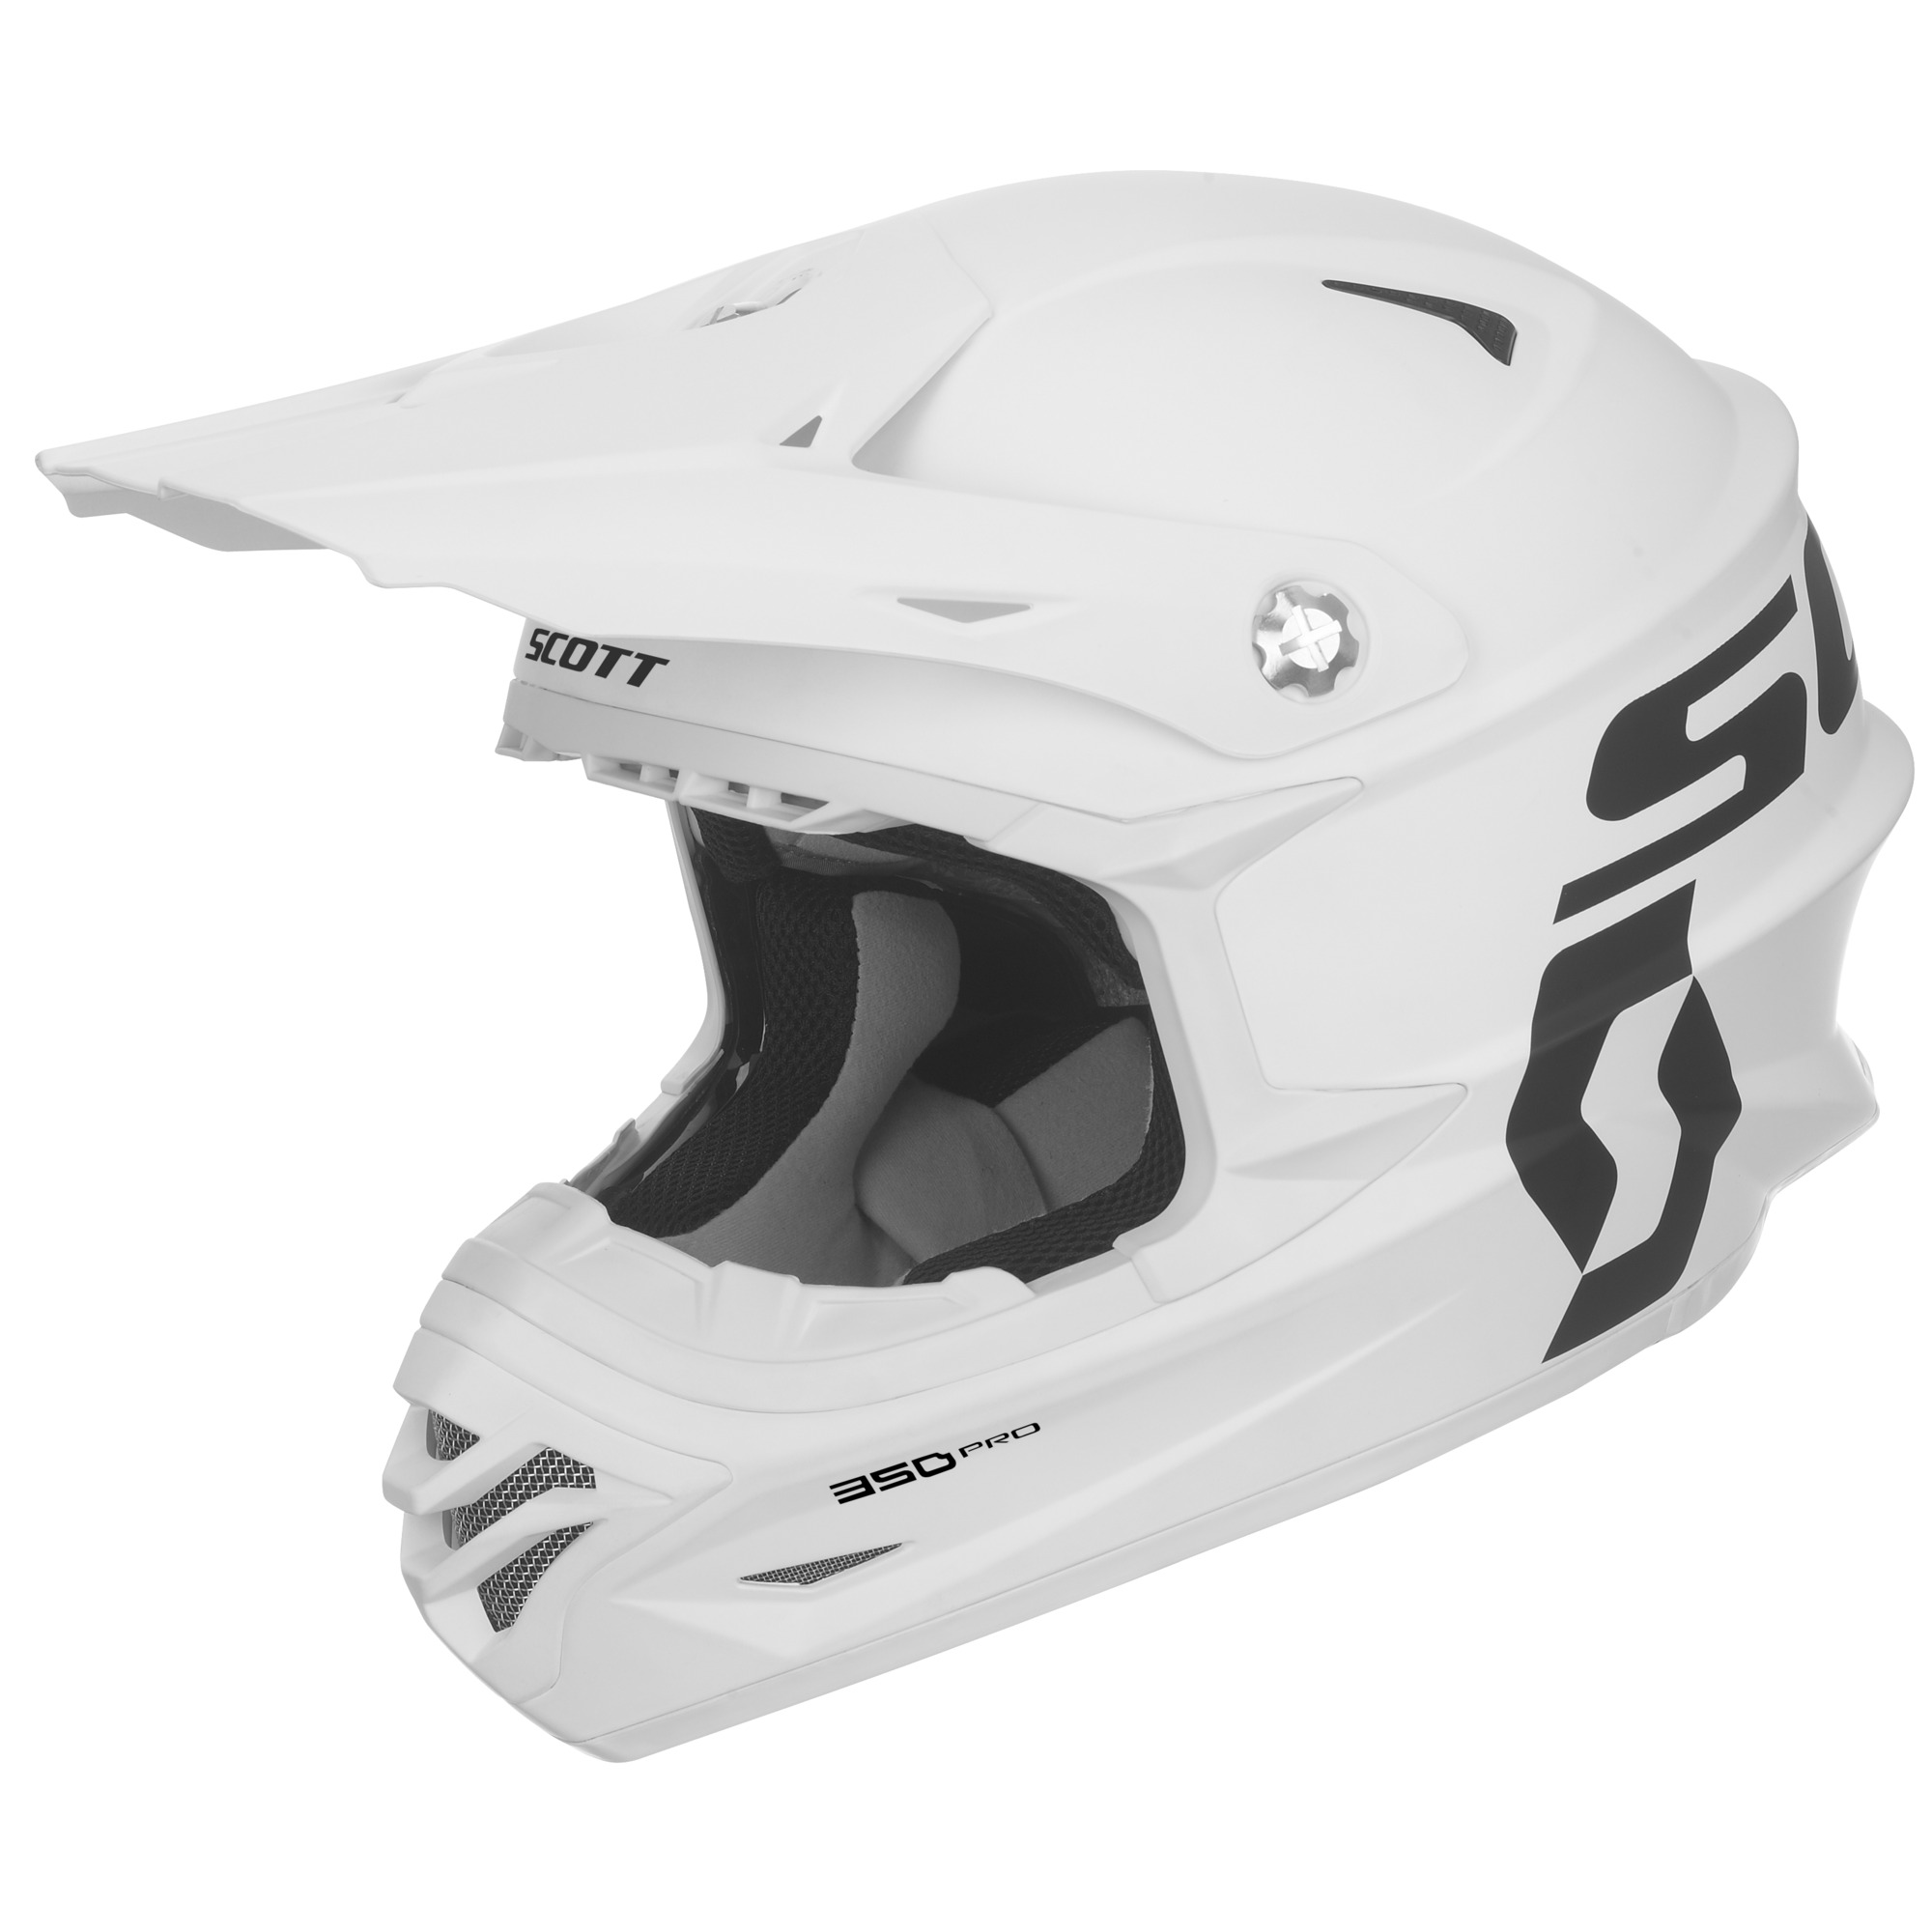 SCOTT 350 Pro AS Helmet